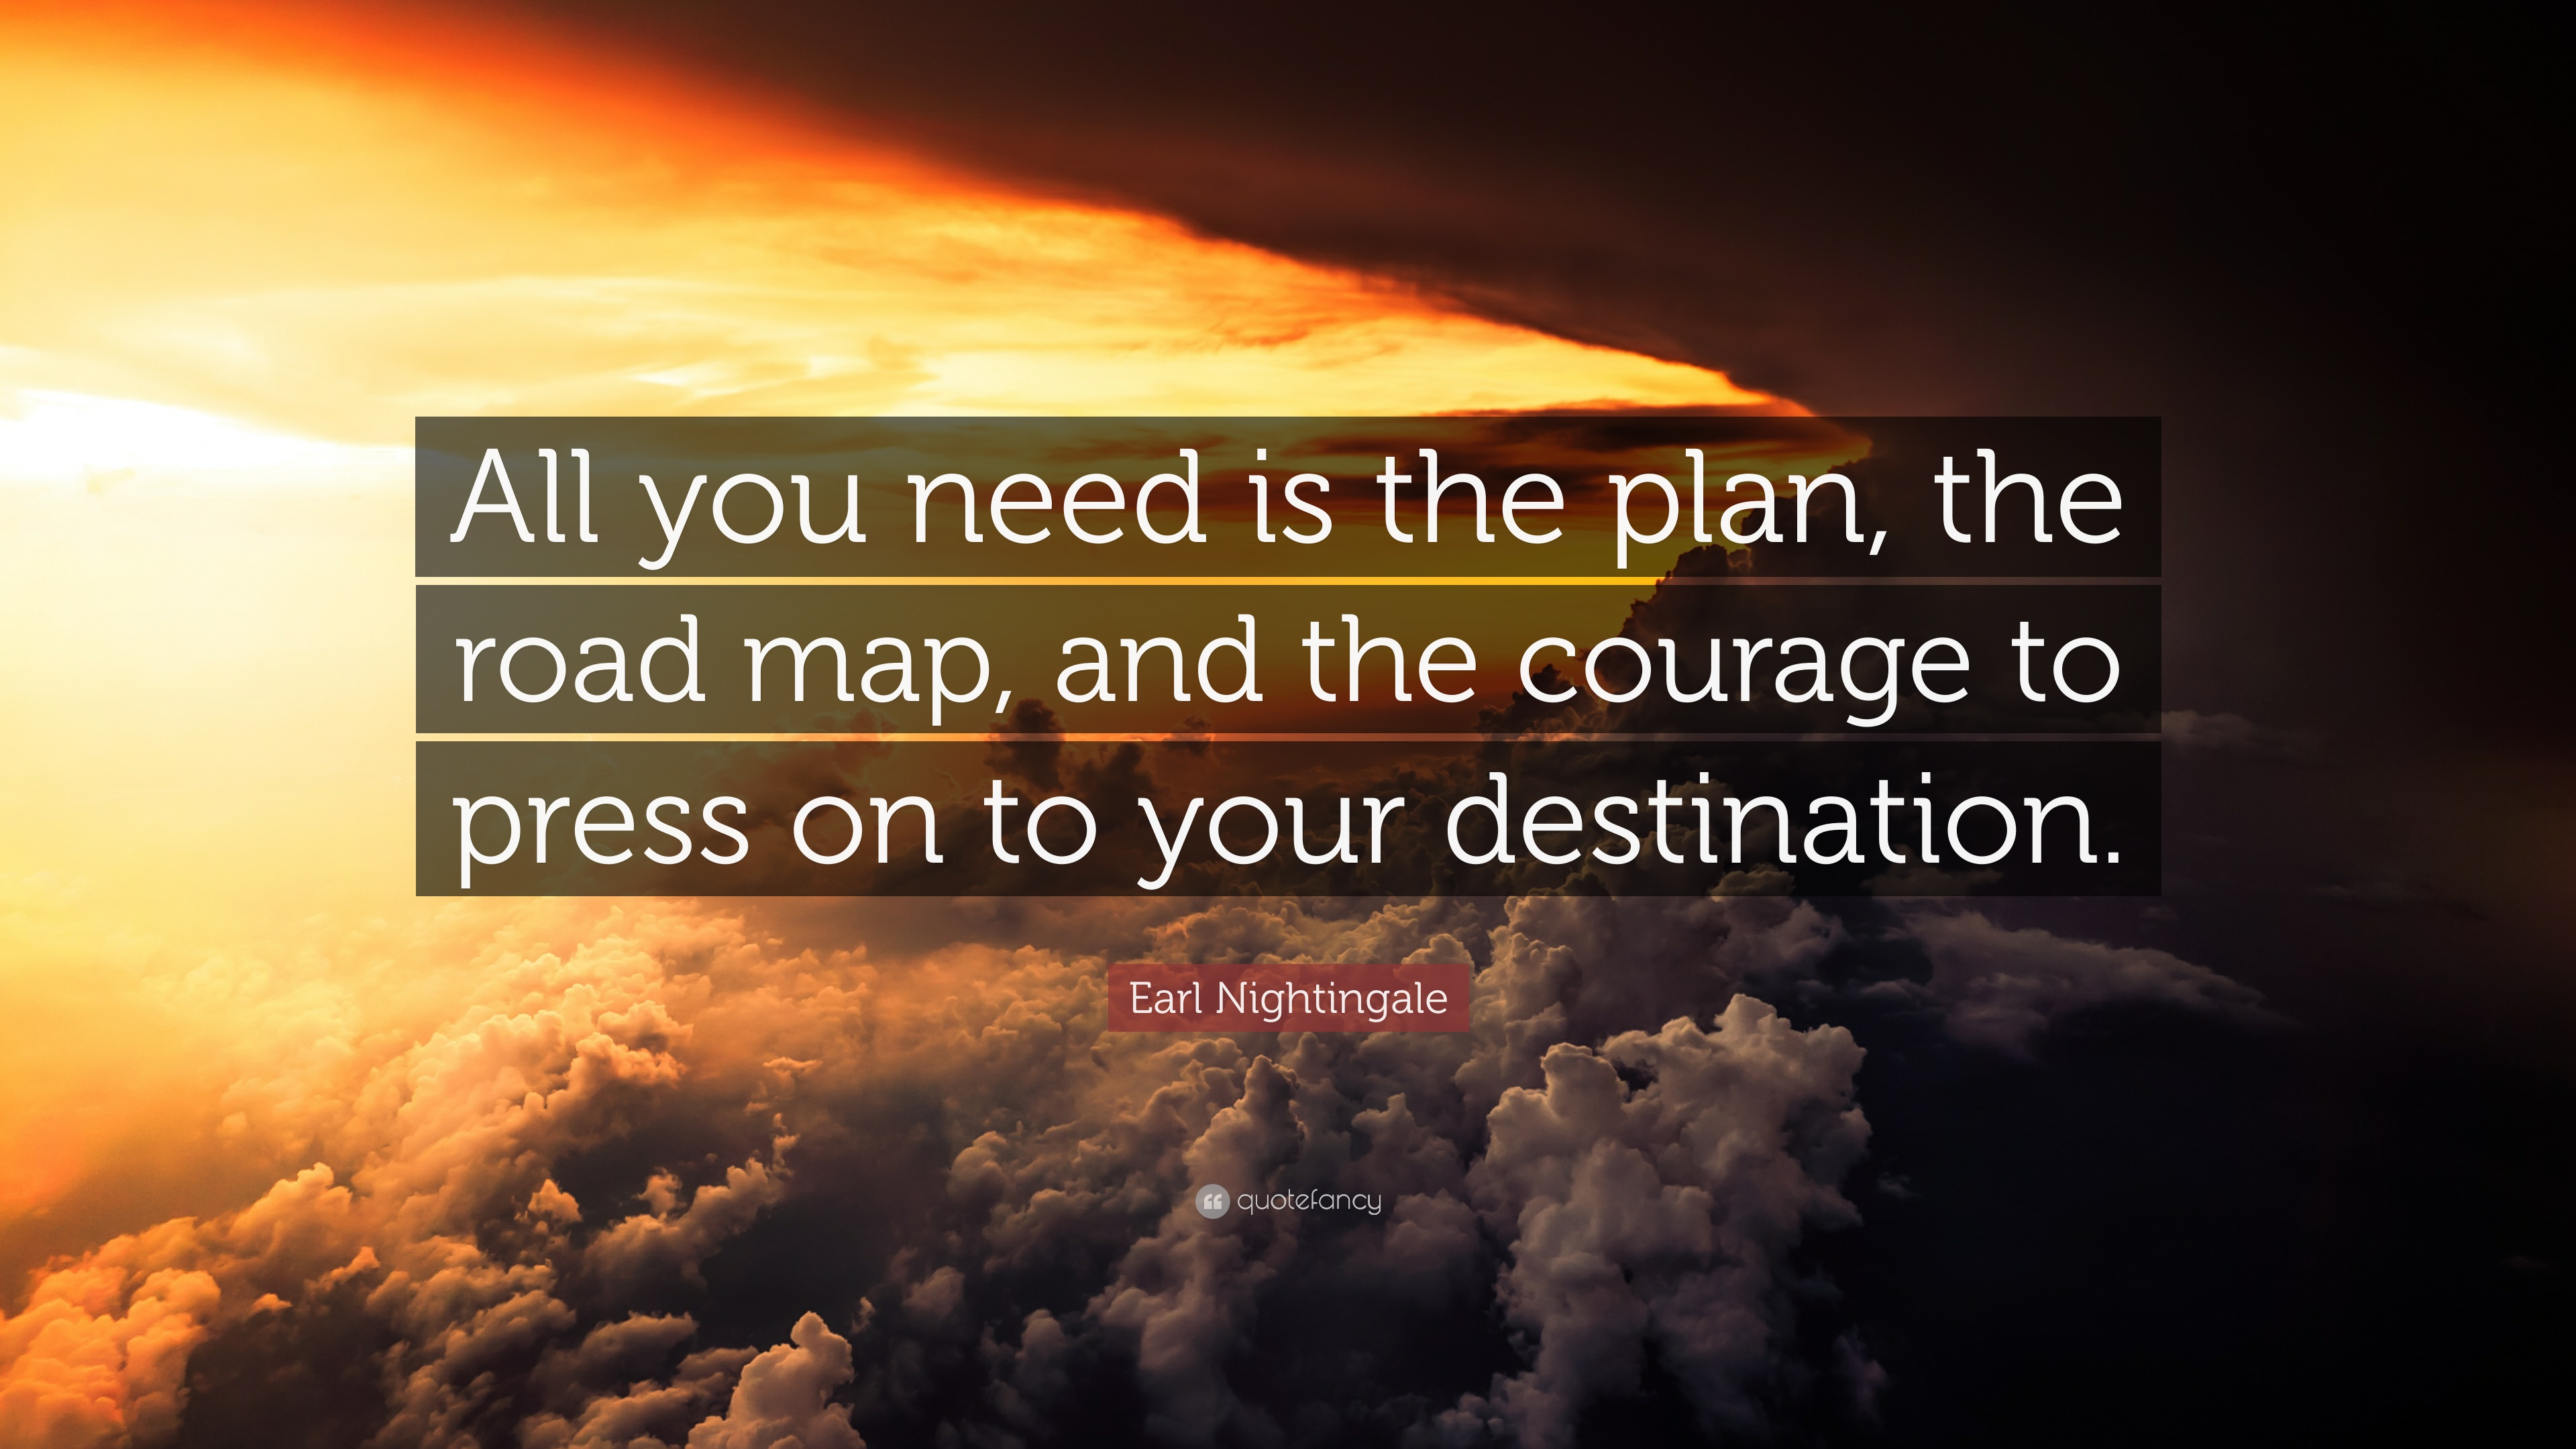 """Earl Nightingale Quote: """"All you need is the plan, the road map, on i need history, bank of america map, us postal code map, i need an id, i need camera, i need address, i need hours, i need sunscreen, i need directions, i need water, i need fire, i need phone numbers, i need contacts, i need an essay, i need an umbrella, i need some money, i need lunch, i need text, i need an eraser, i need transportation,"""